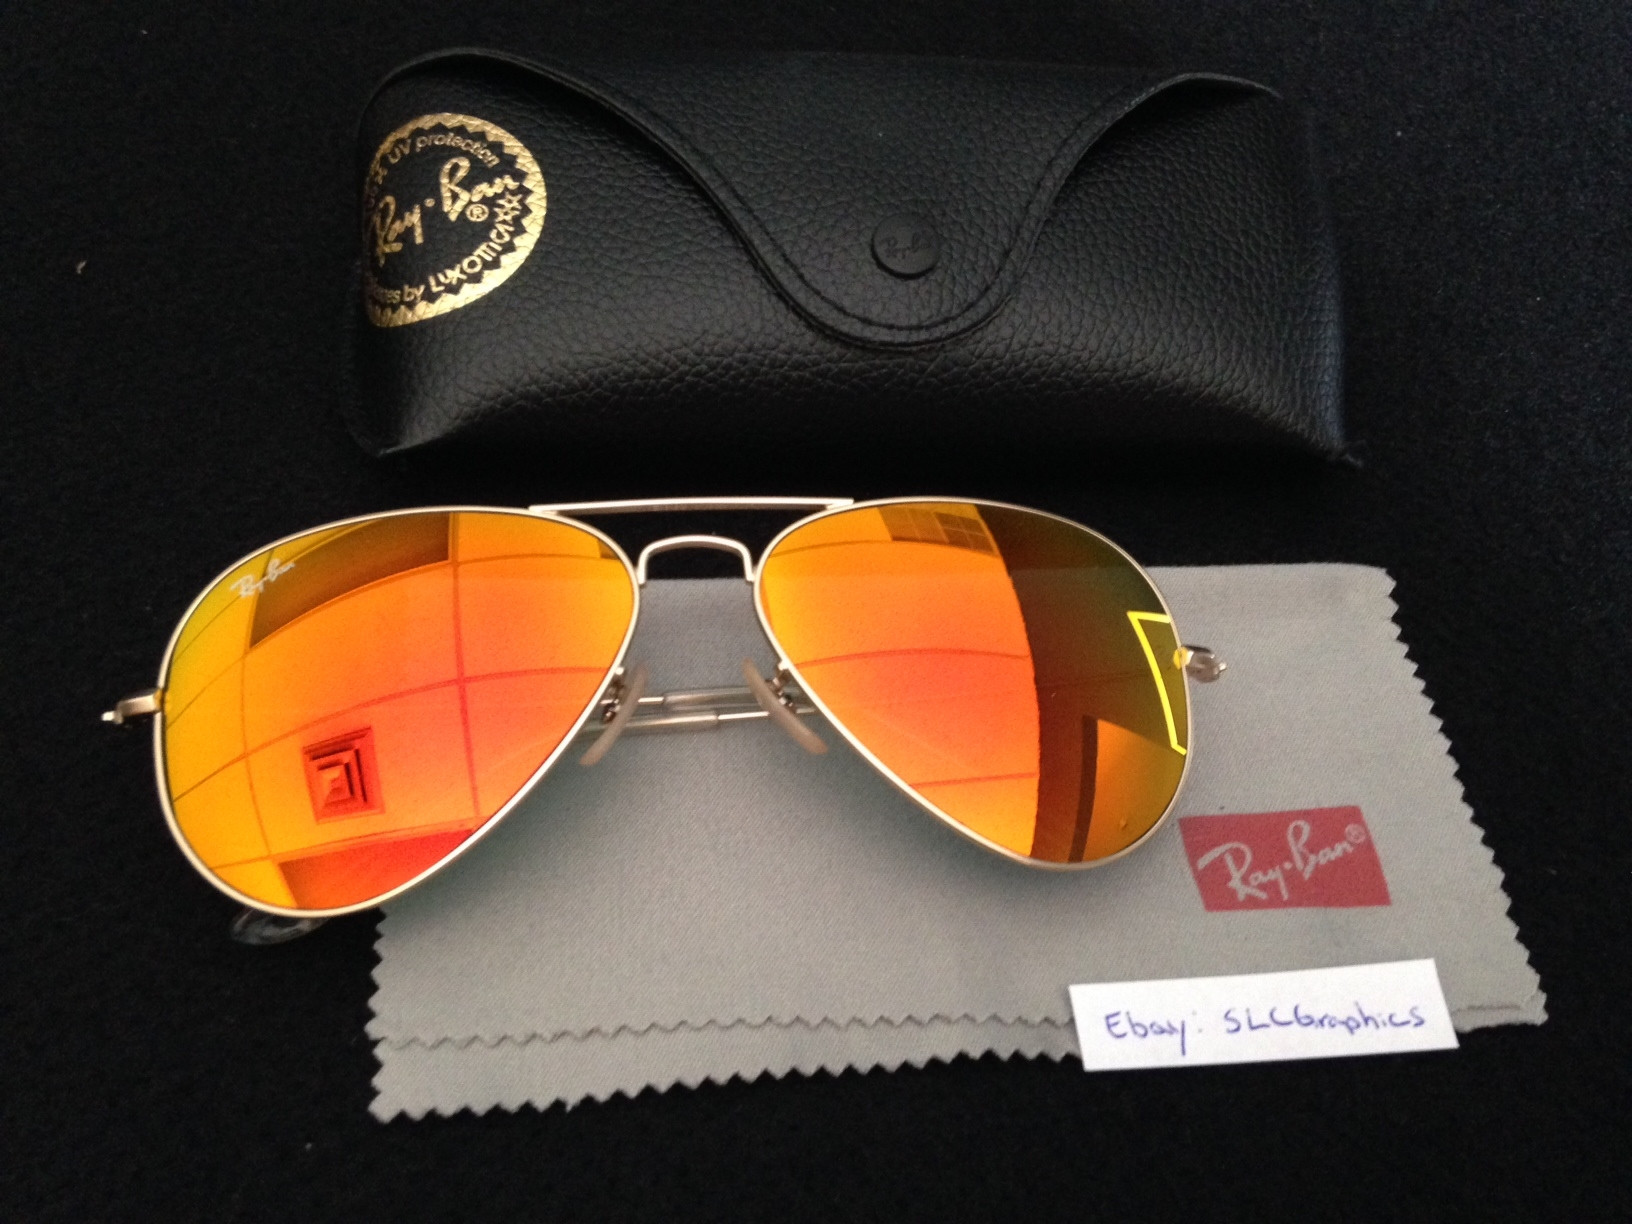 ray ban sunglasses price jqt5  ray ban sunglasses online price in india